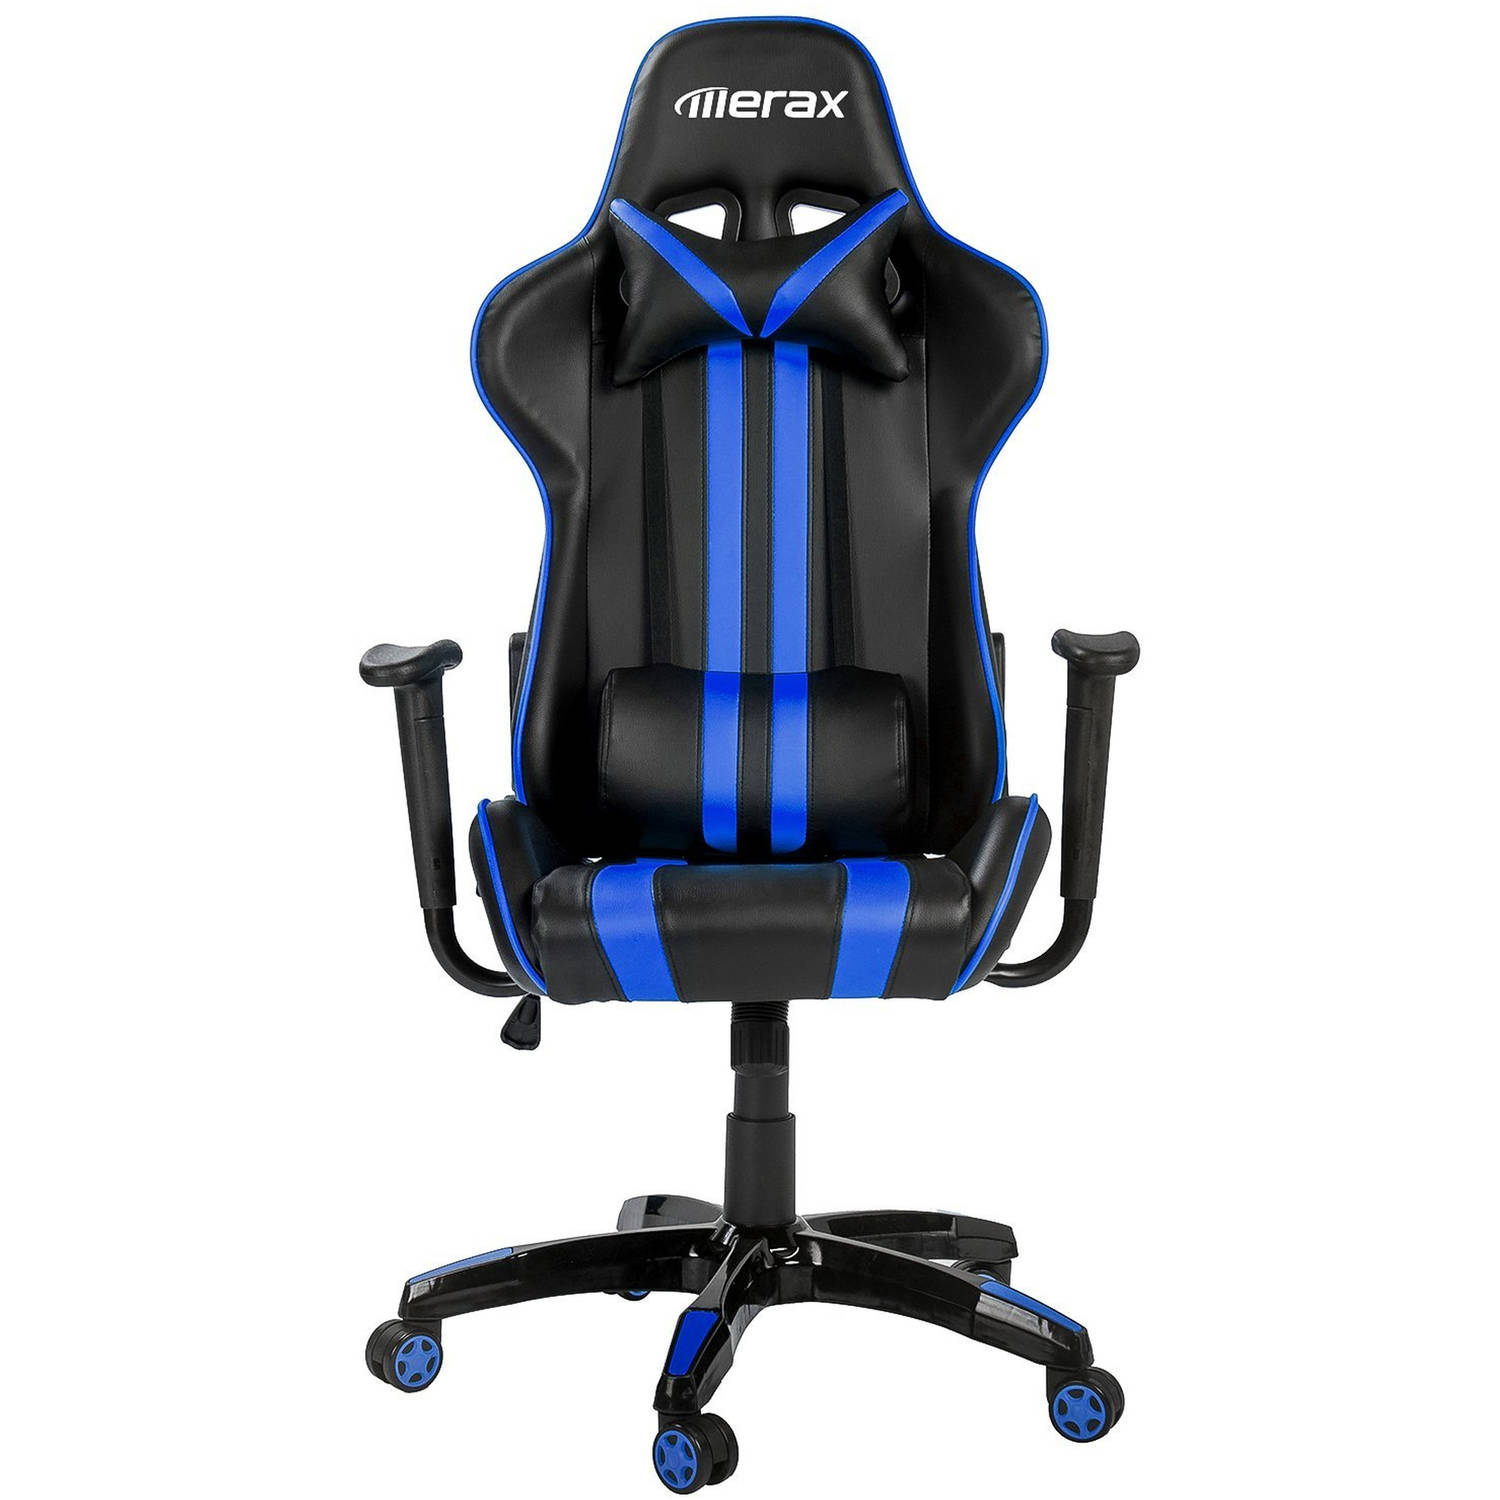 Merax Racing Style Gaming Chair/Executive Swivel Leather Office Chair    Walmart.com